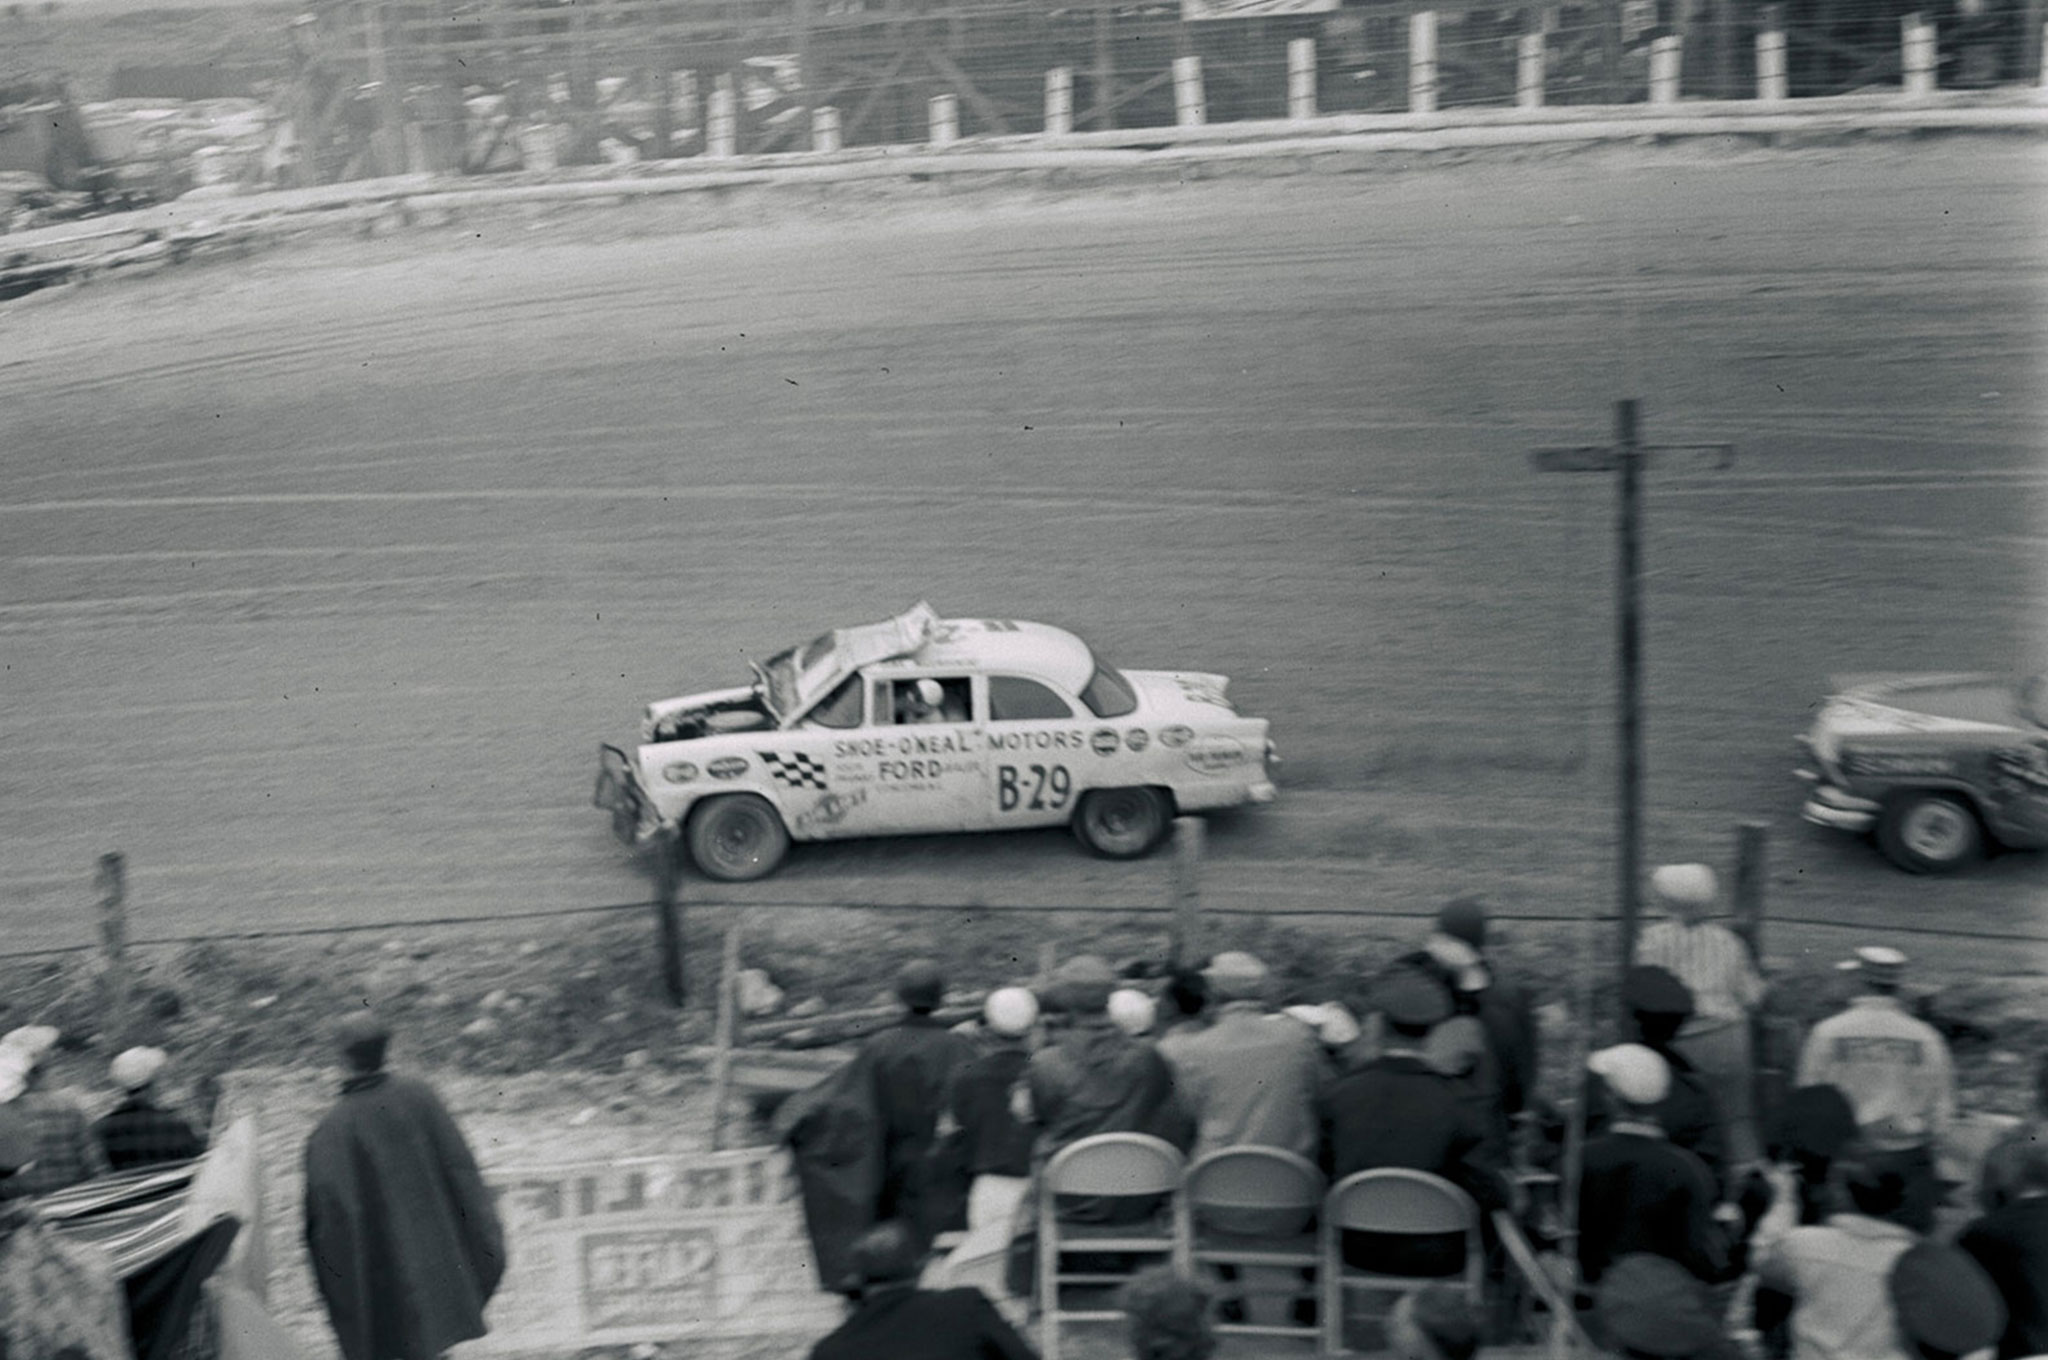 Dink Widenhouse's 34th-place Grand National finish was somewhat miraculous after two spinouts and whatever contact caused this temporary obstruction. Wally Parks got the shot, and another from the same spot after the Ford had shed its hood.